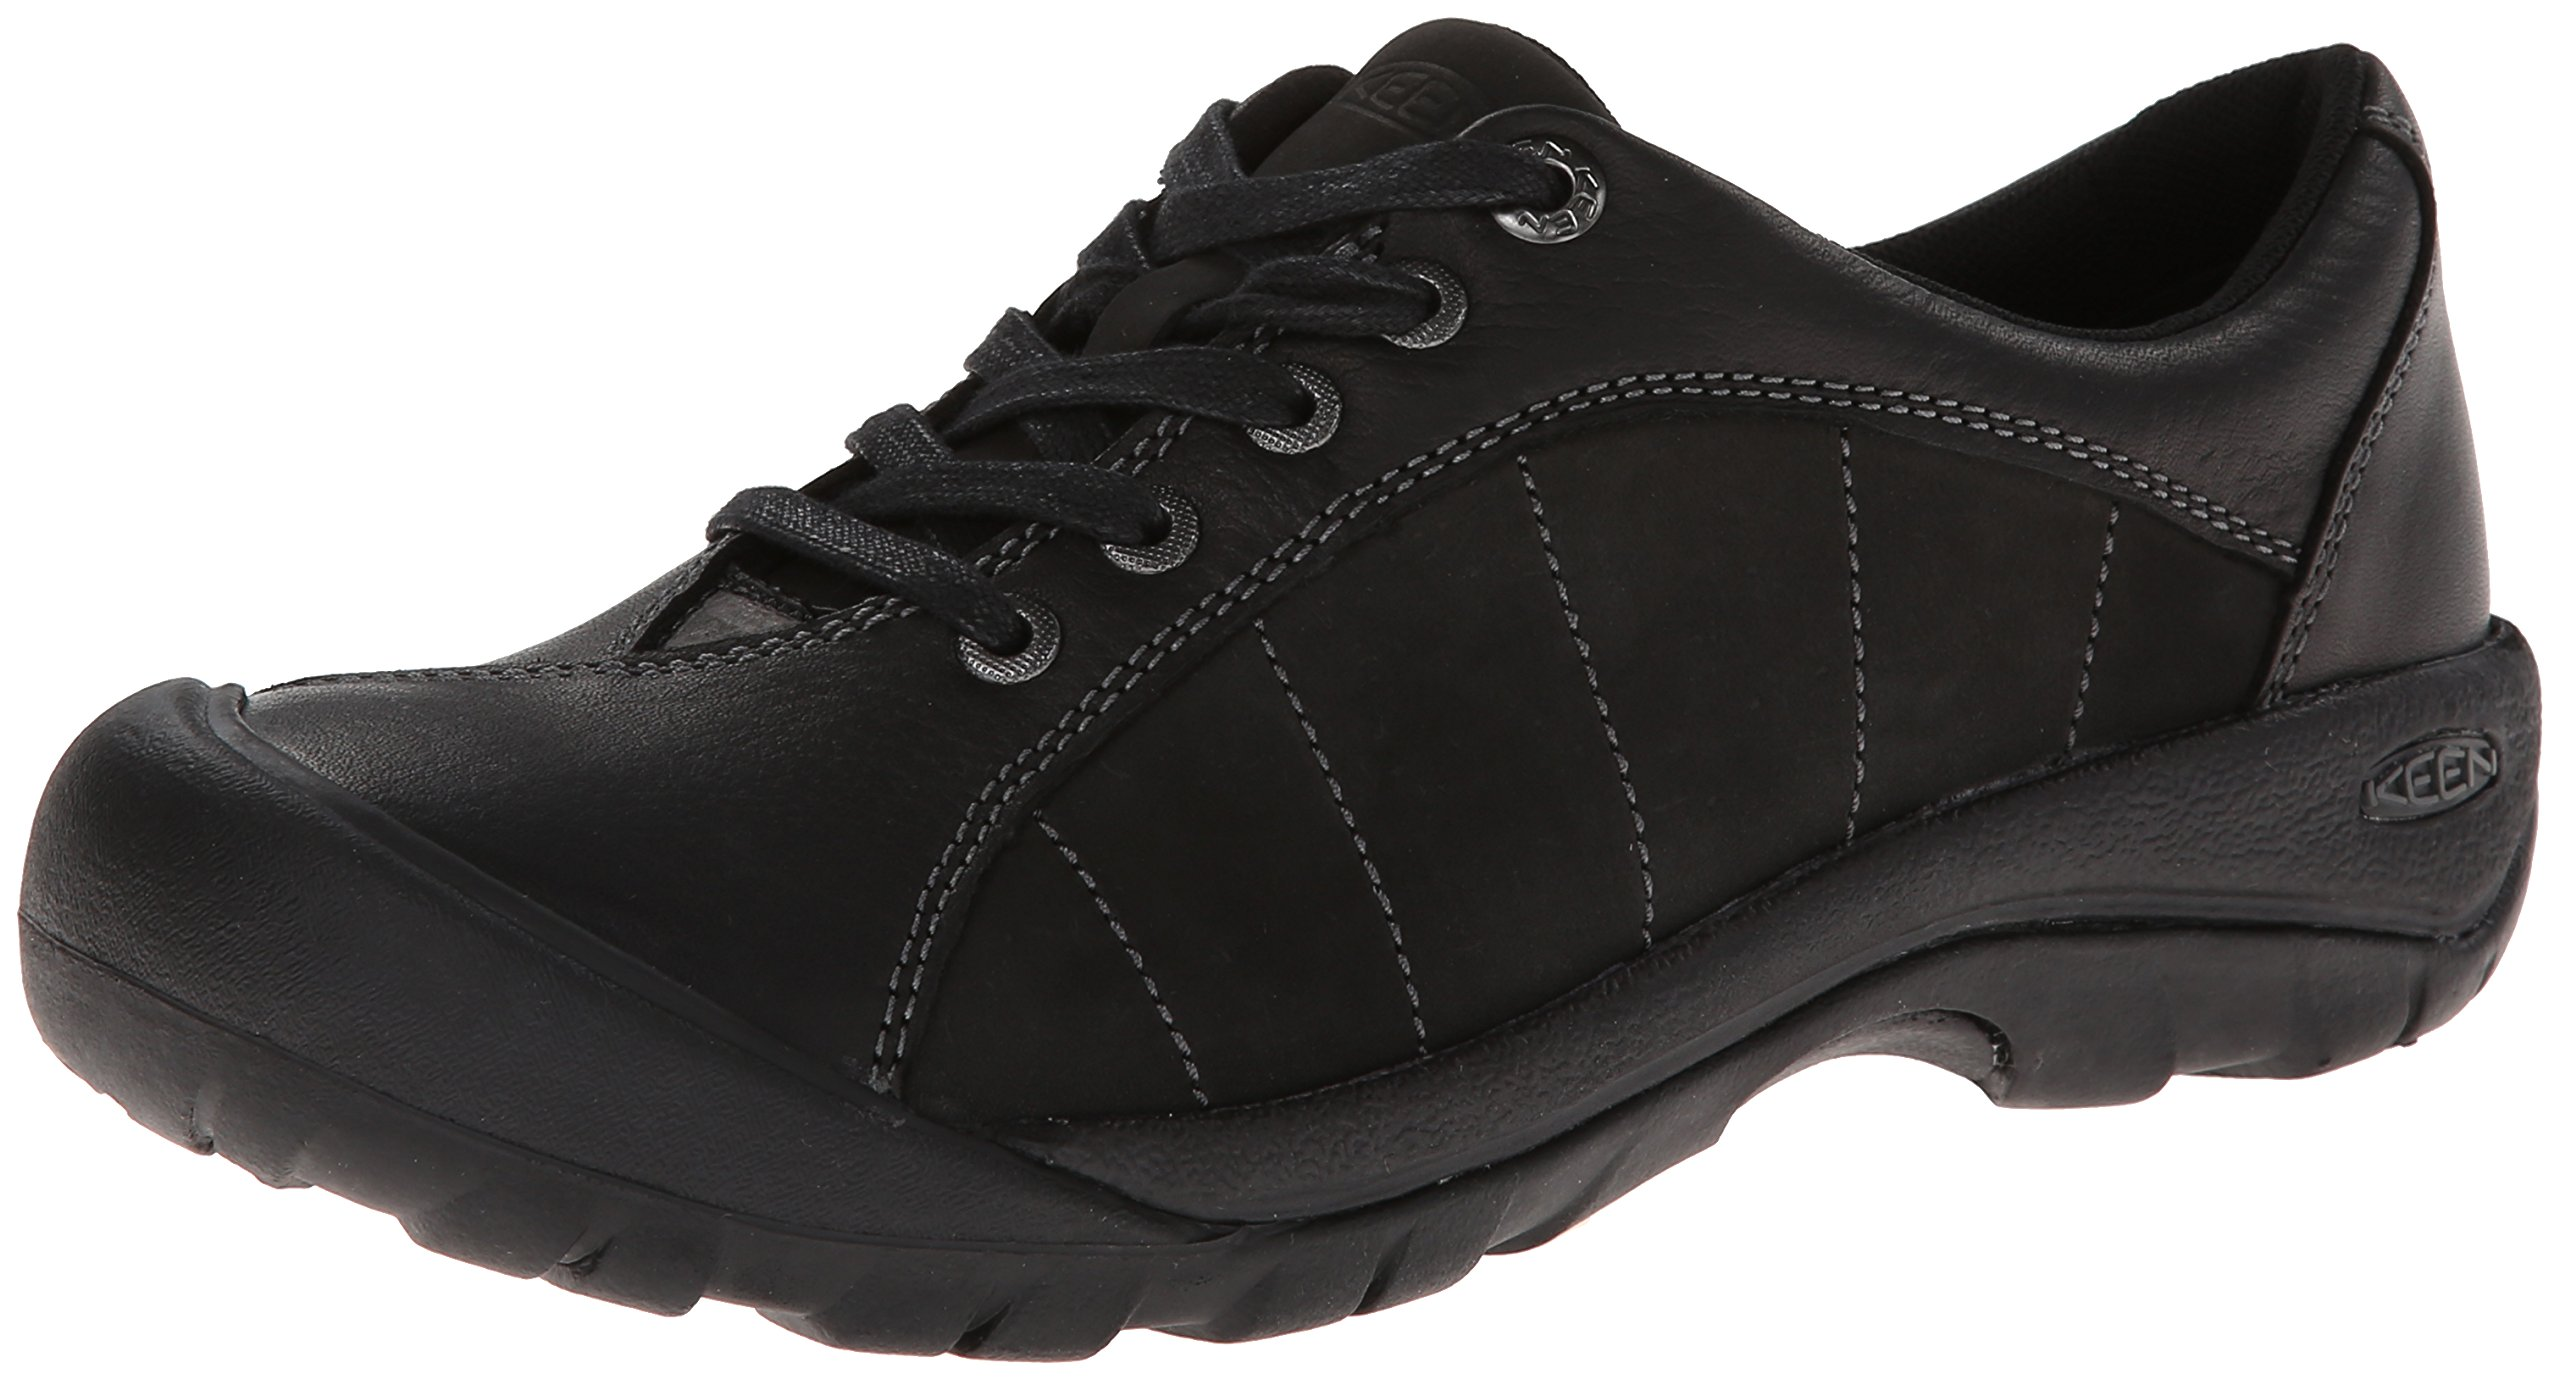 KEEN Women's Presidio Oxford,Black/Magnet,5.5 M US